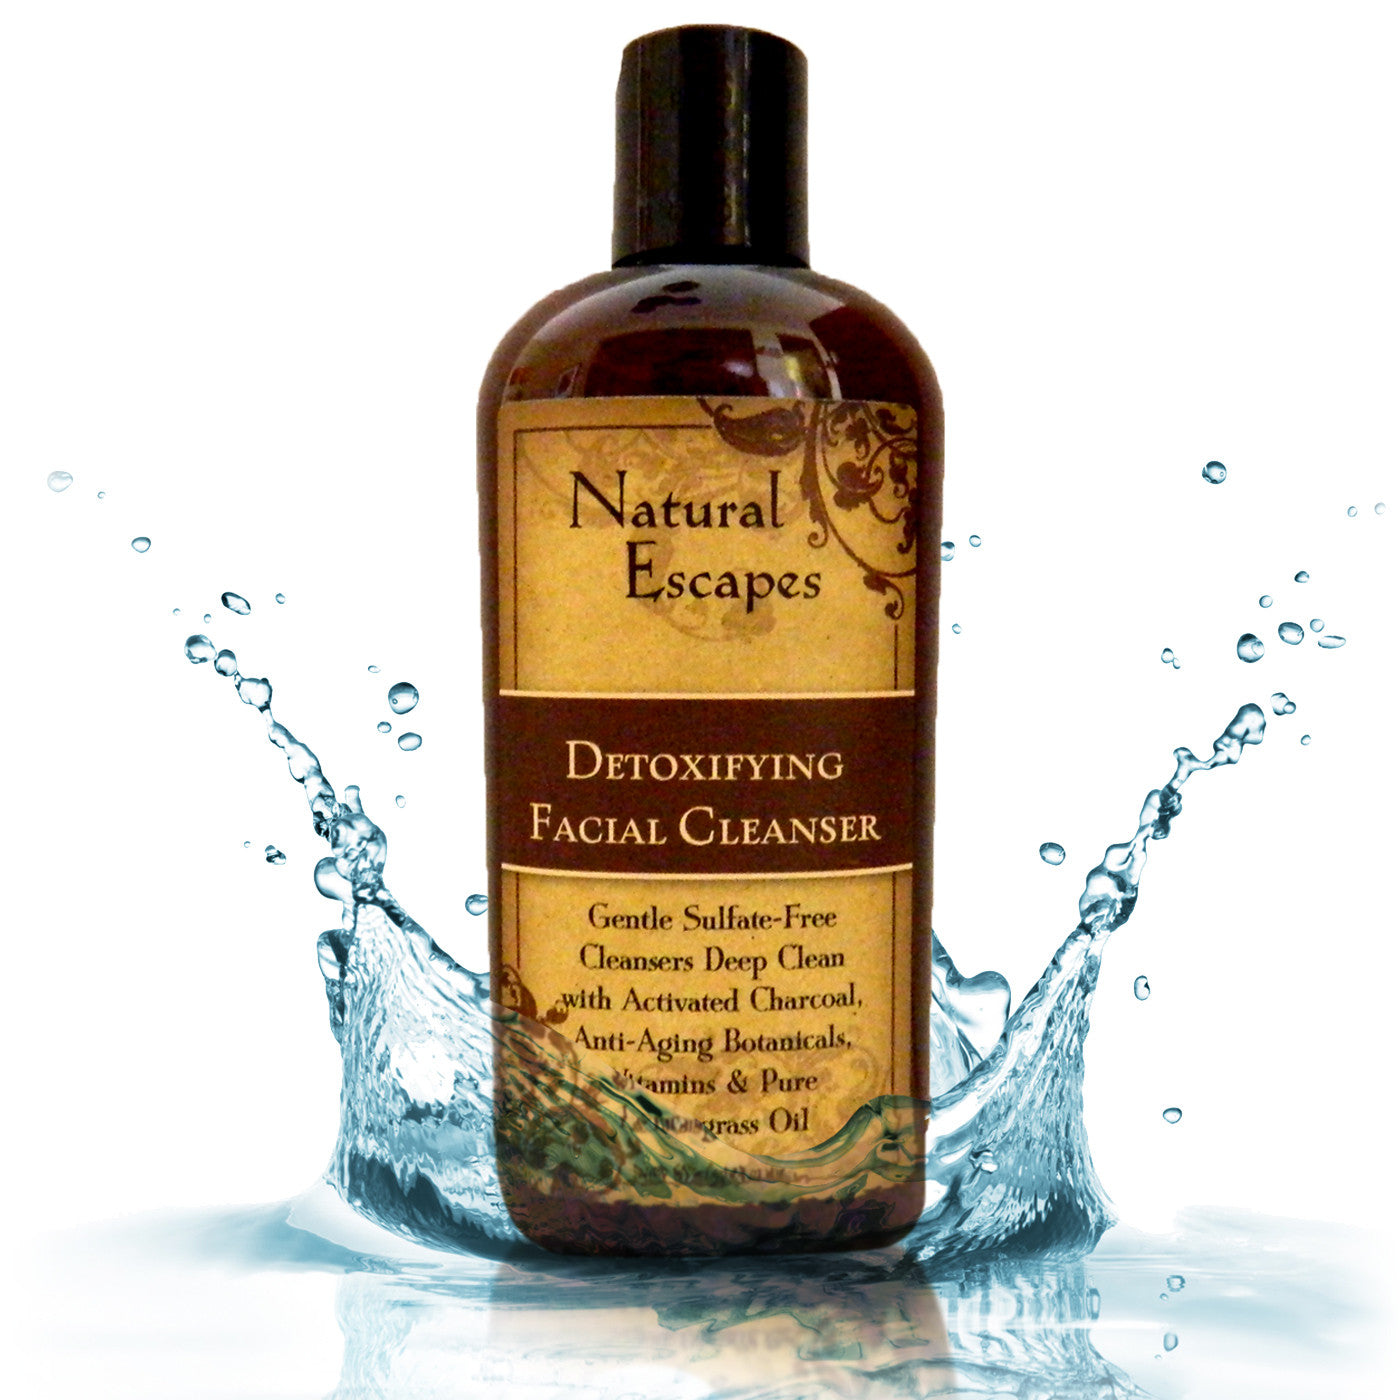 Lemongrass Detoxifying Daily Facial Cleanser | Sulfate-Free Face Wash with Activated Charcoal